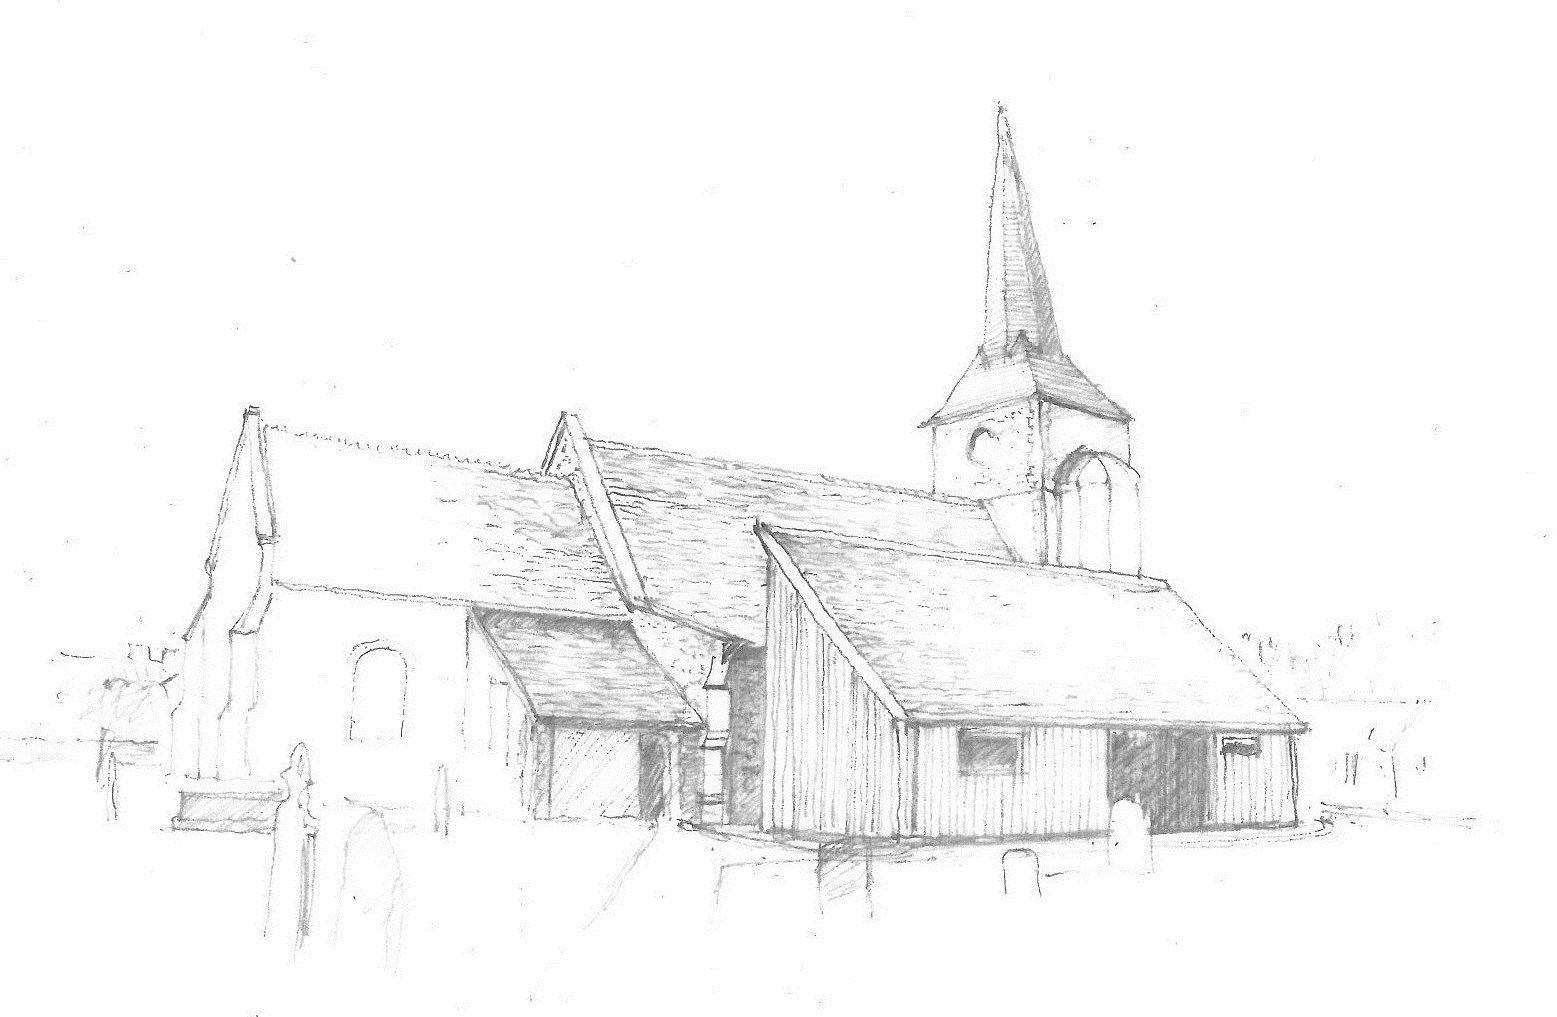 Sketched external view from North East